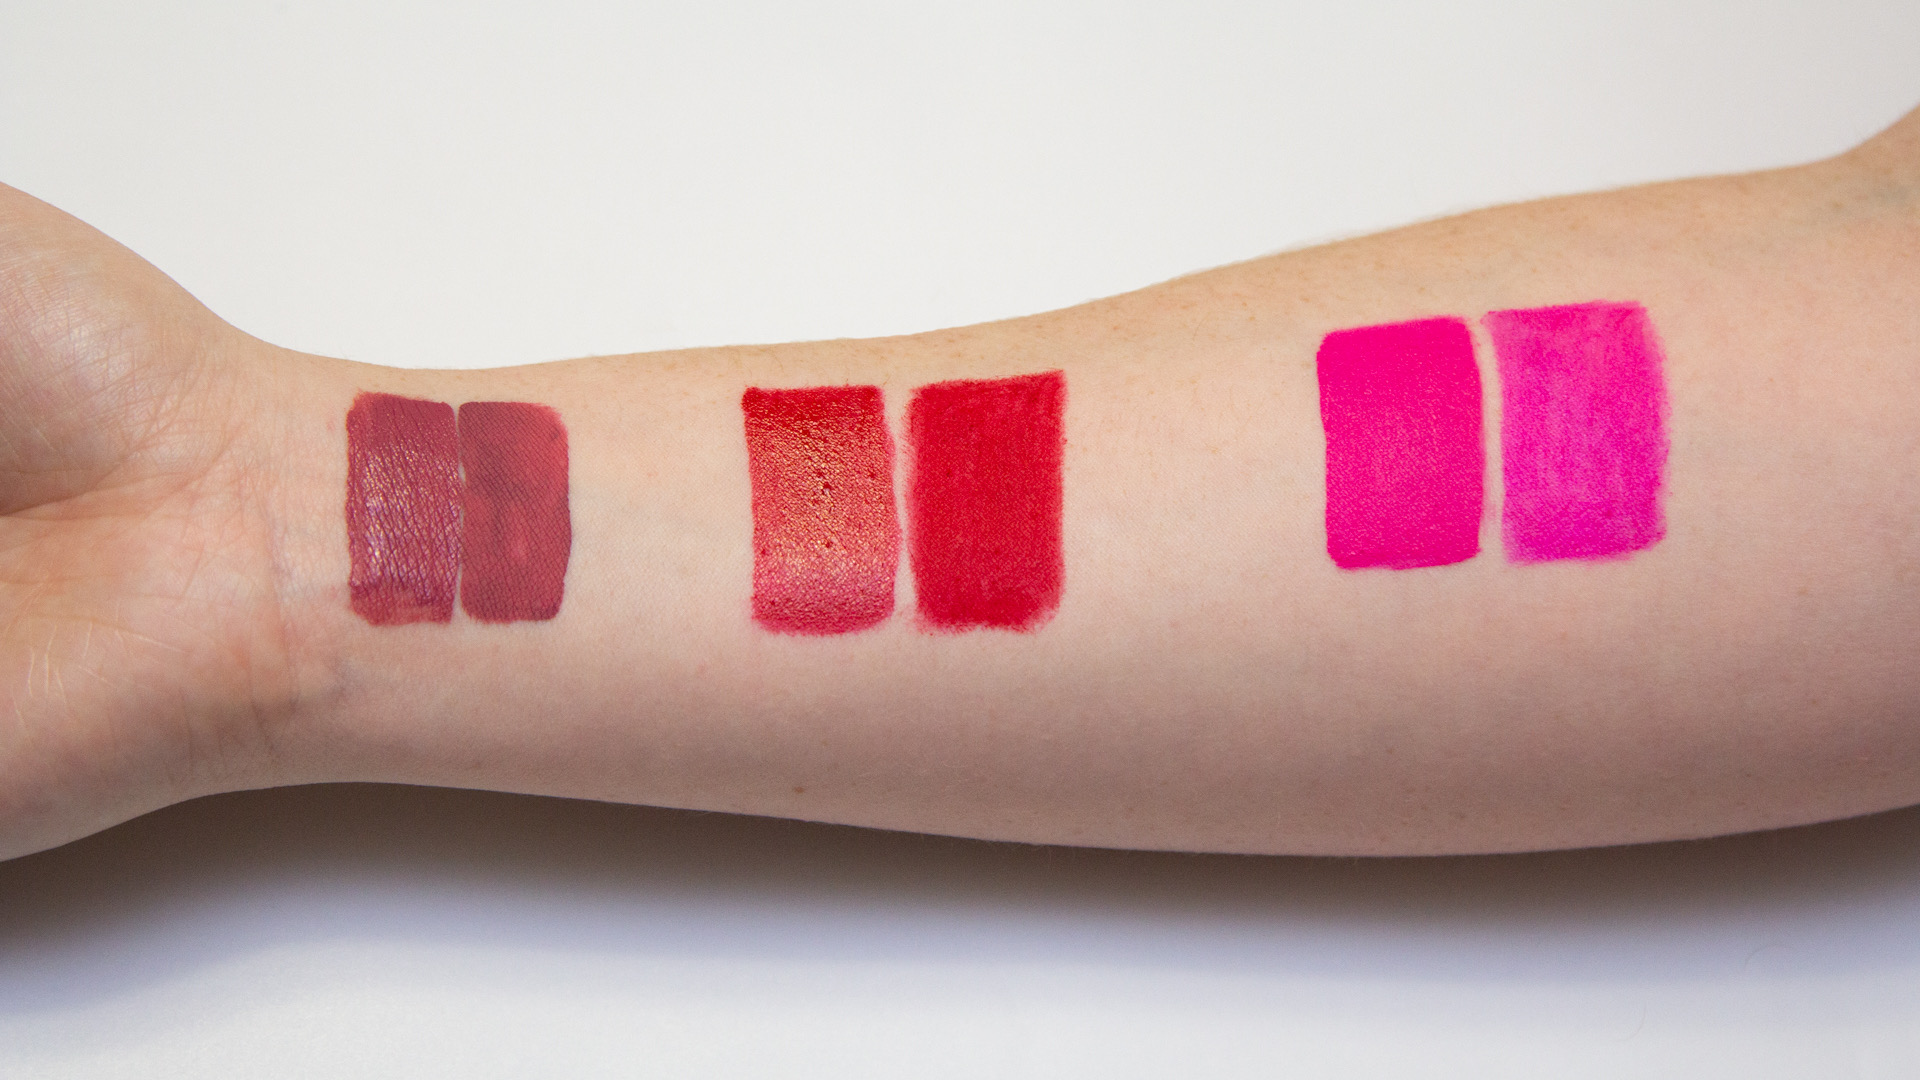 ginger-me-glam-studio-512-kxan-lipstick-swatches-and-makeup-dupes.jpg